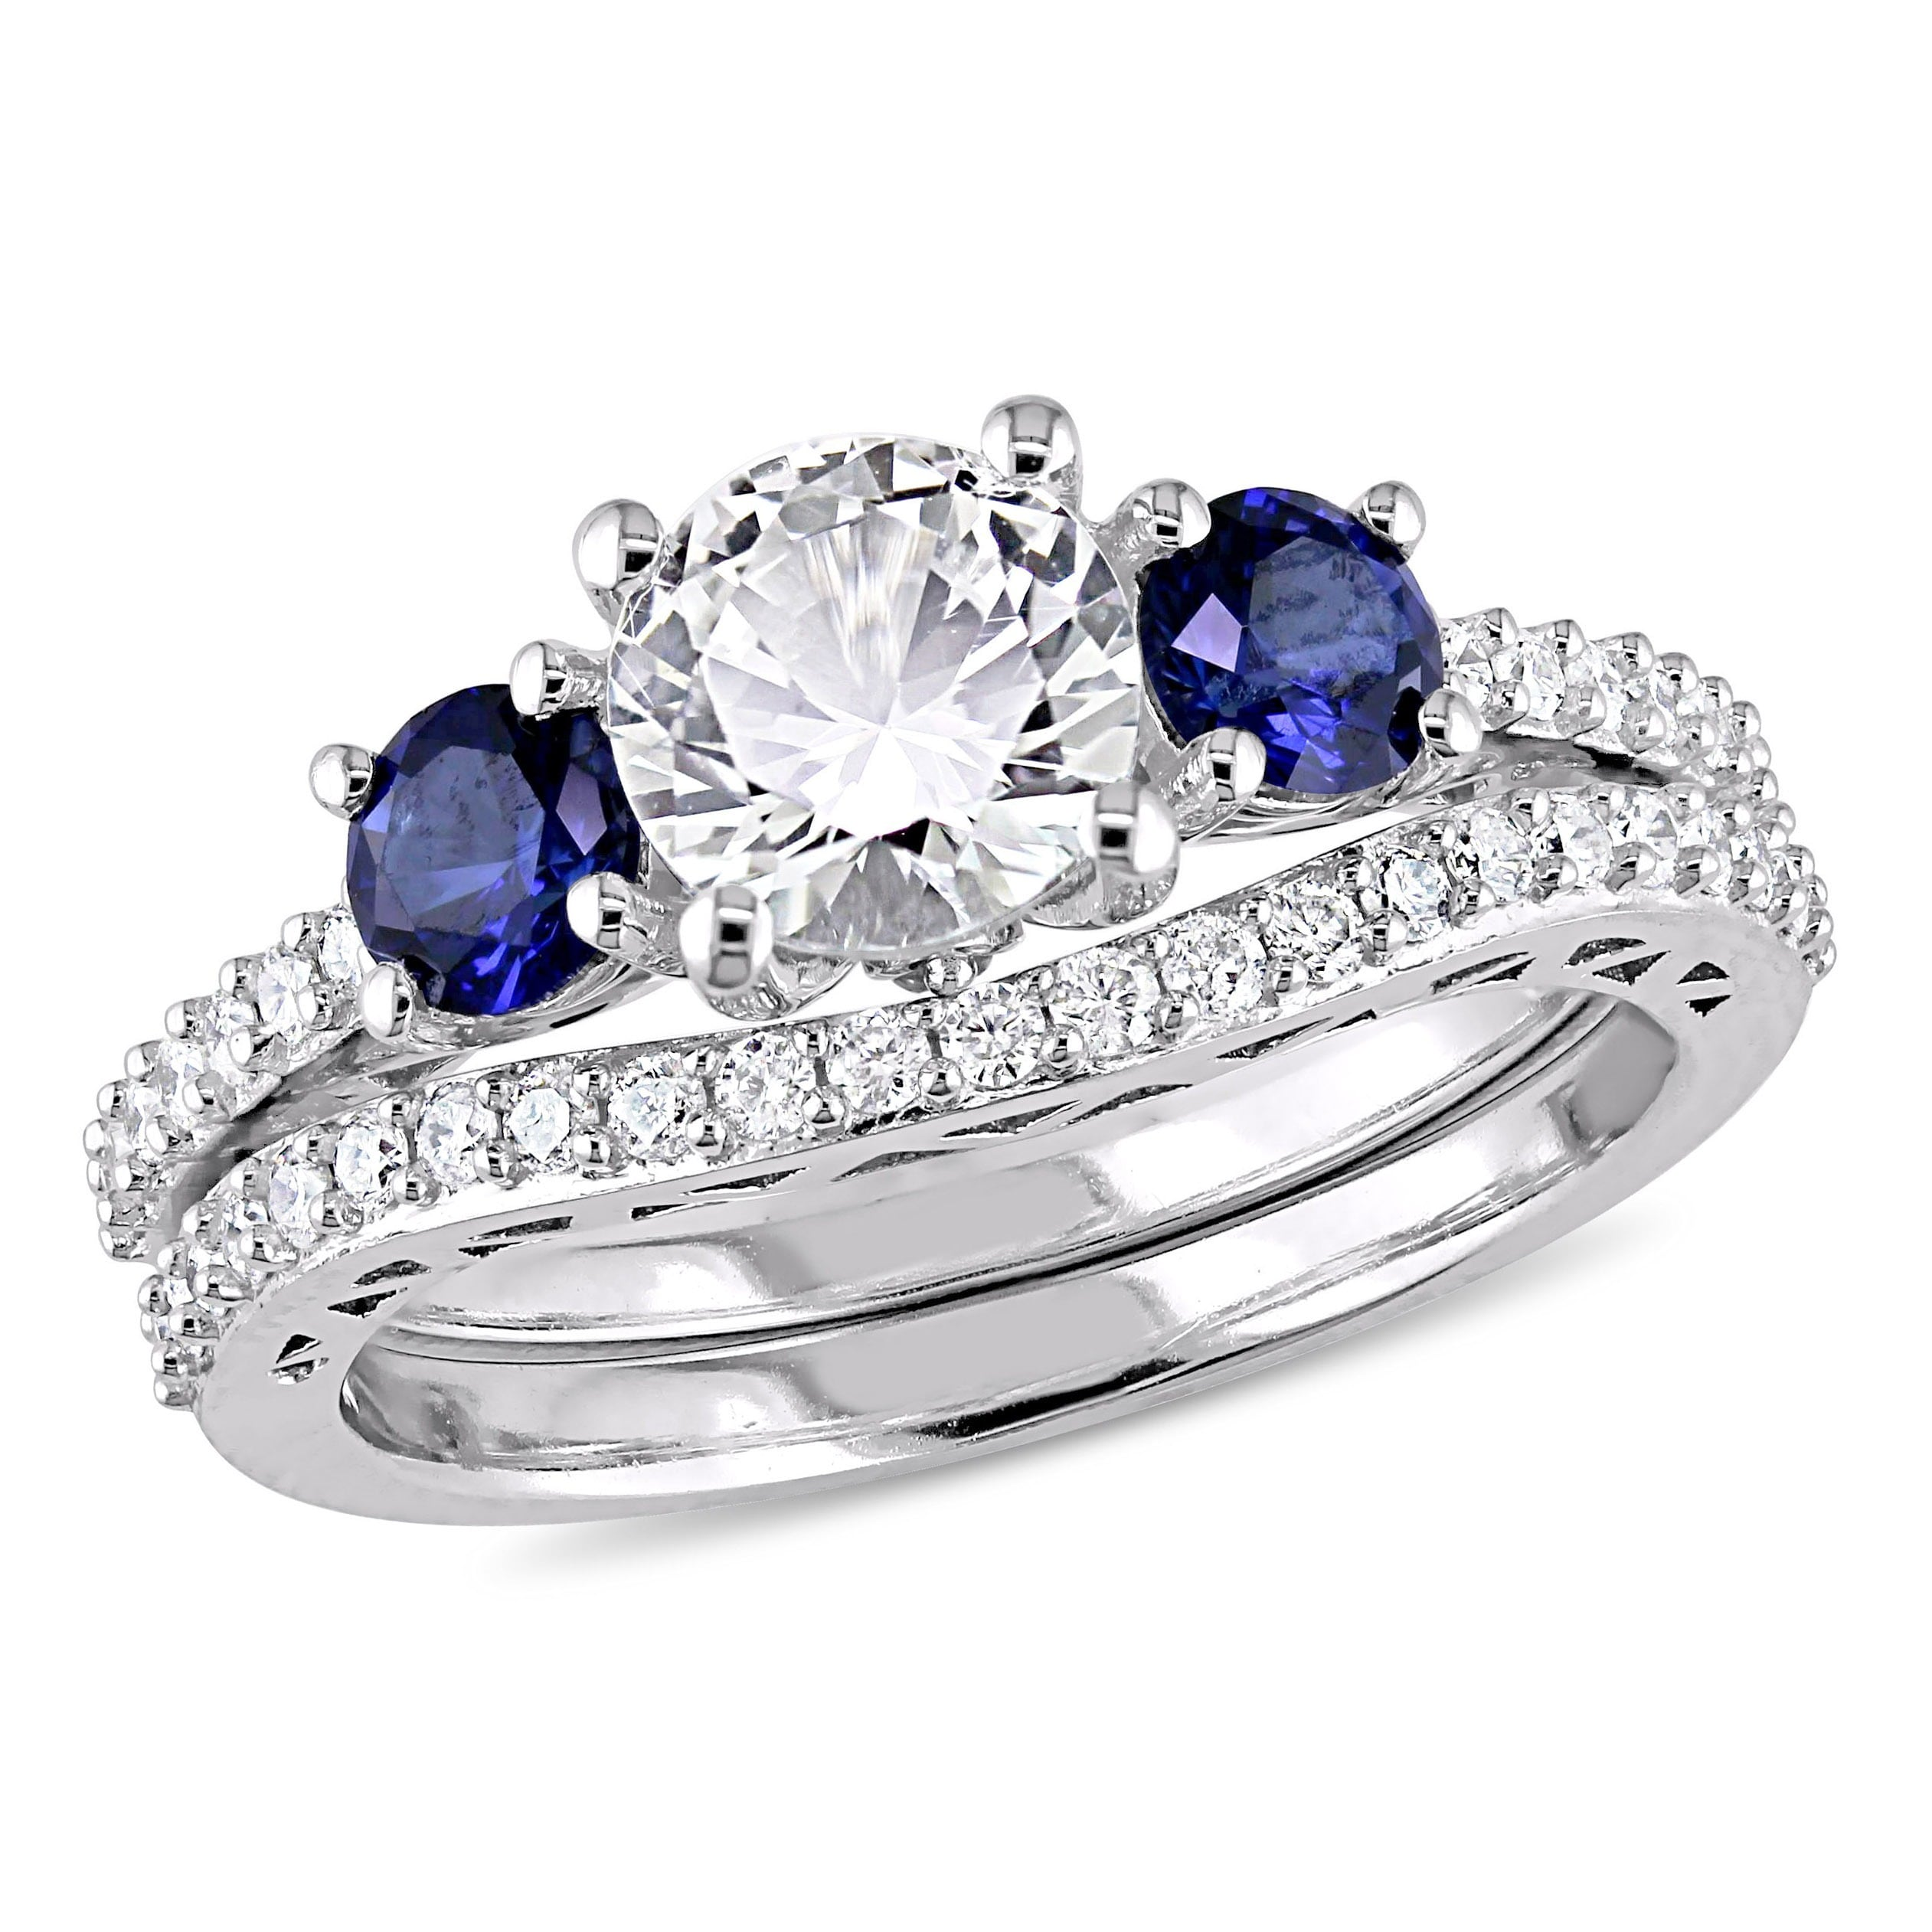 jewelry sapphire over tcw cfm silver ring piece sterling oval in products palmbeach accent diamond set detail bridal and at platinum wedding